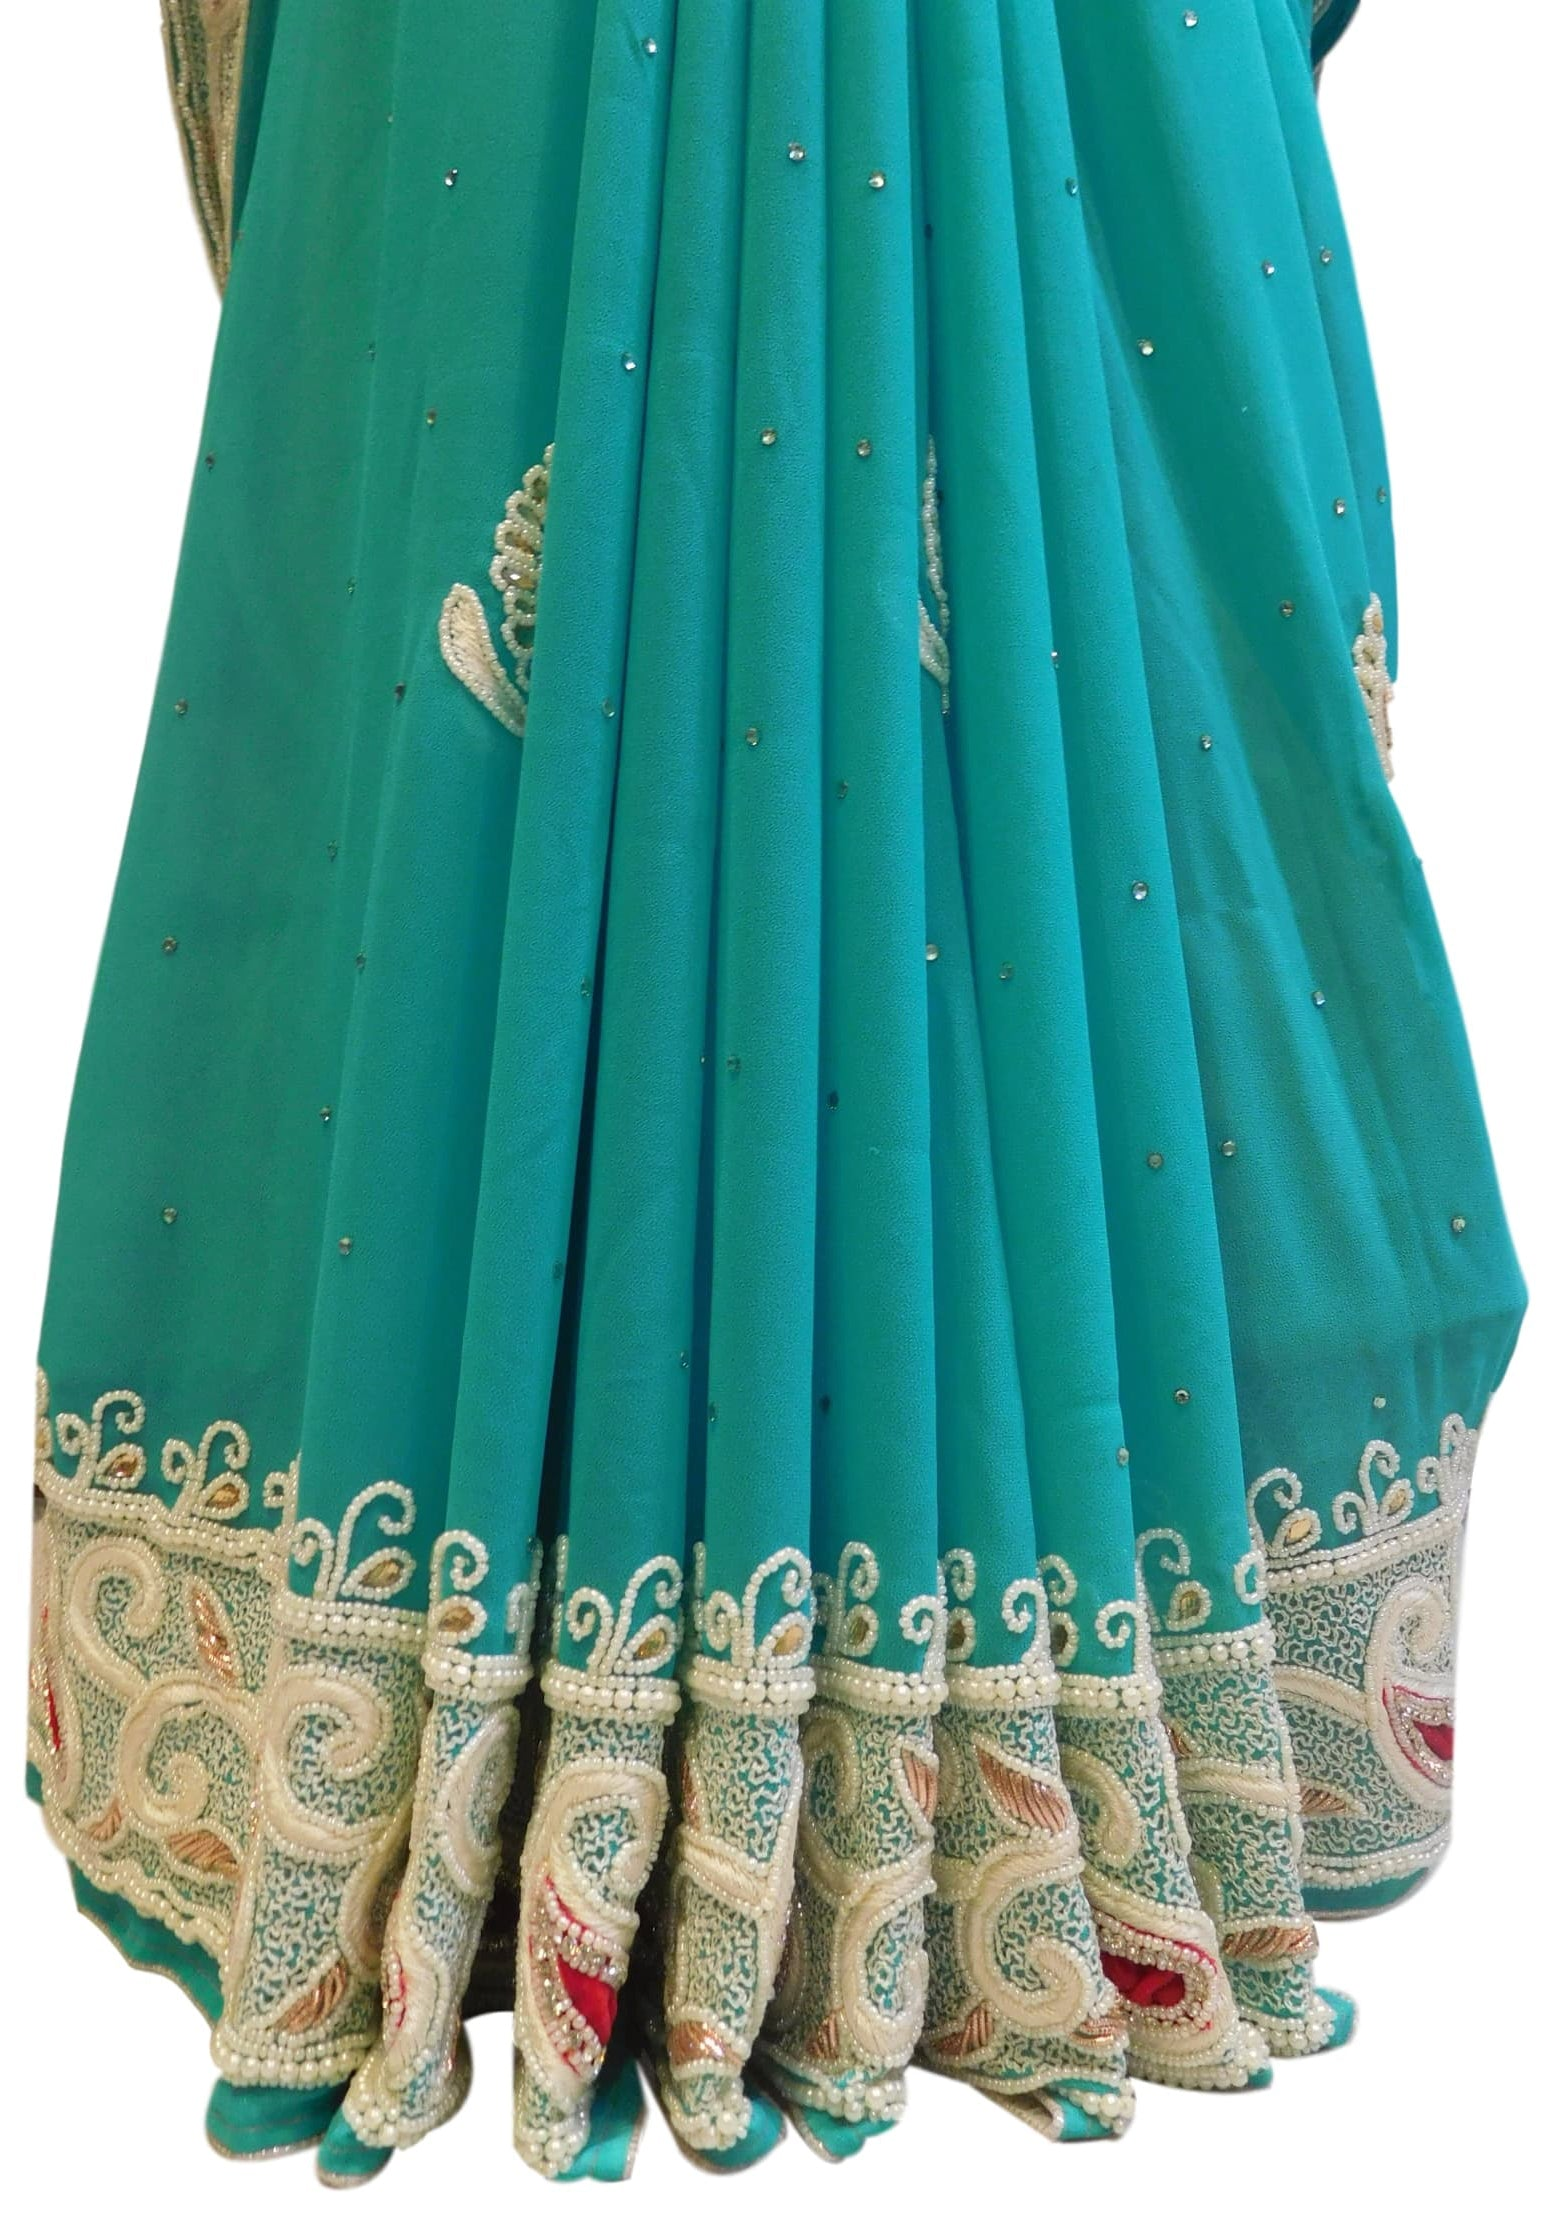 Turquoise Designer Georgette Hand Embroidery Pearl Beads Stone Bullion Work Saree Sari With Stylish Stitched Blouse